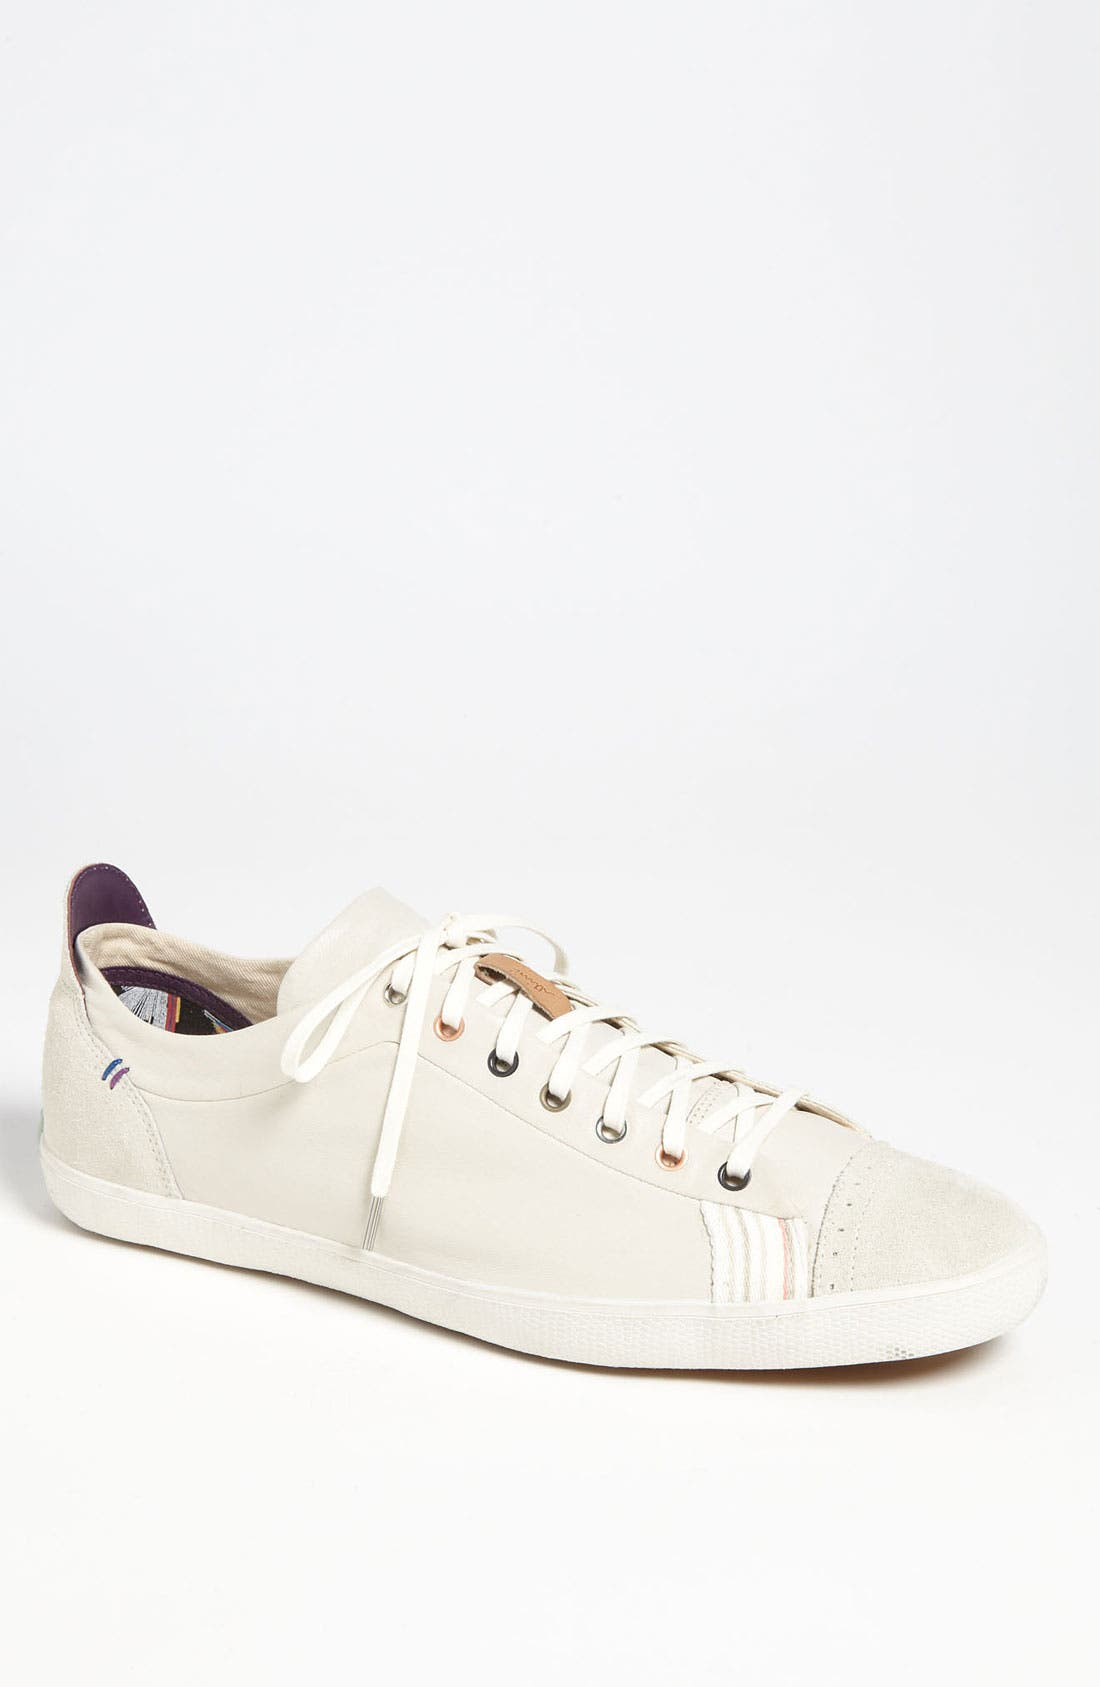 Alternate Image 1 Selected - Paul Smith 'Vestri Lo Pro' Sneaker